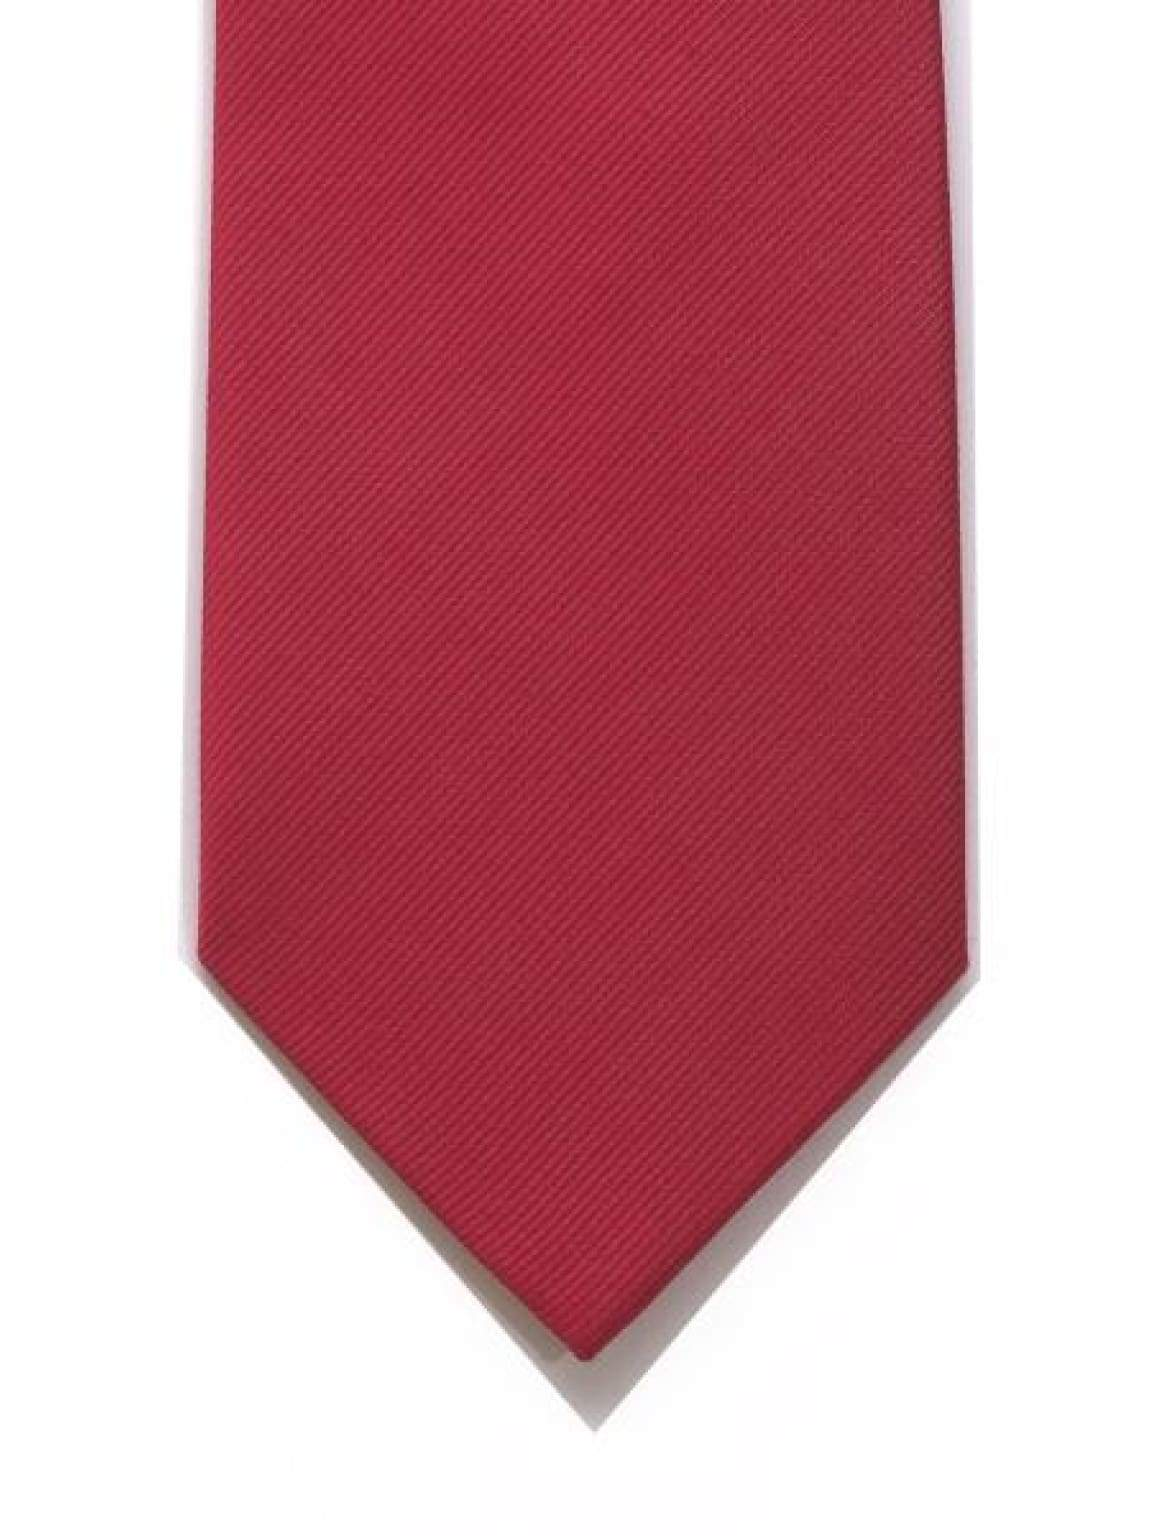 LA Smith Red With Blue Tipping Silk Tie - Accessories